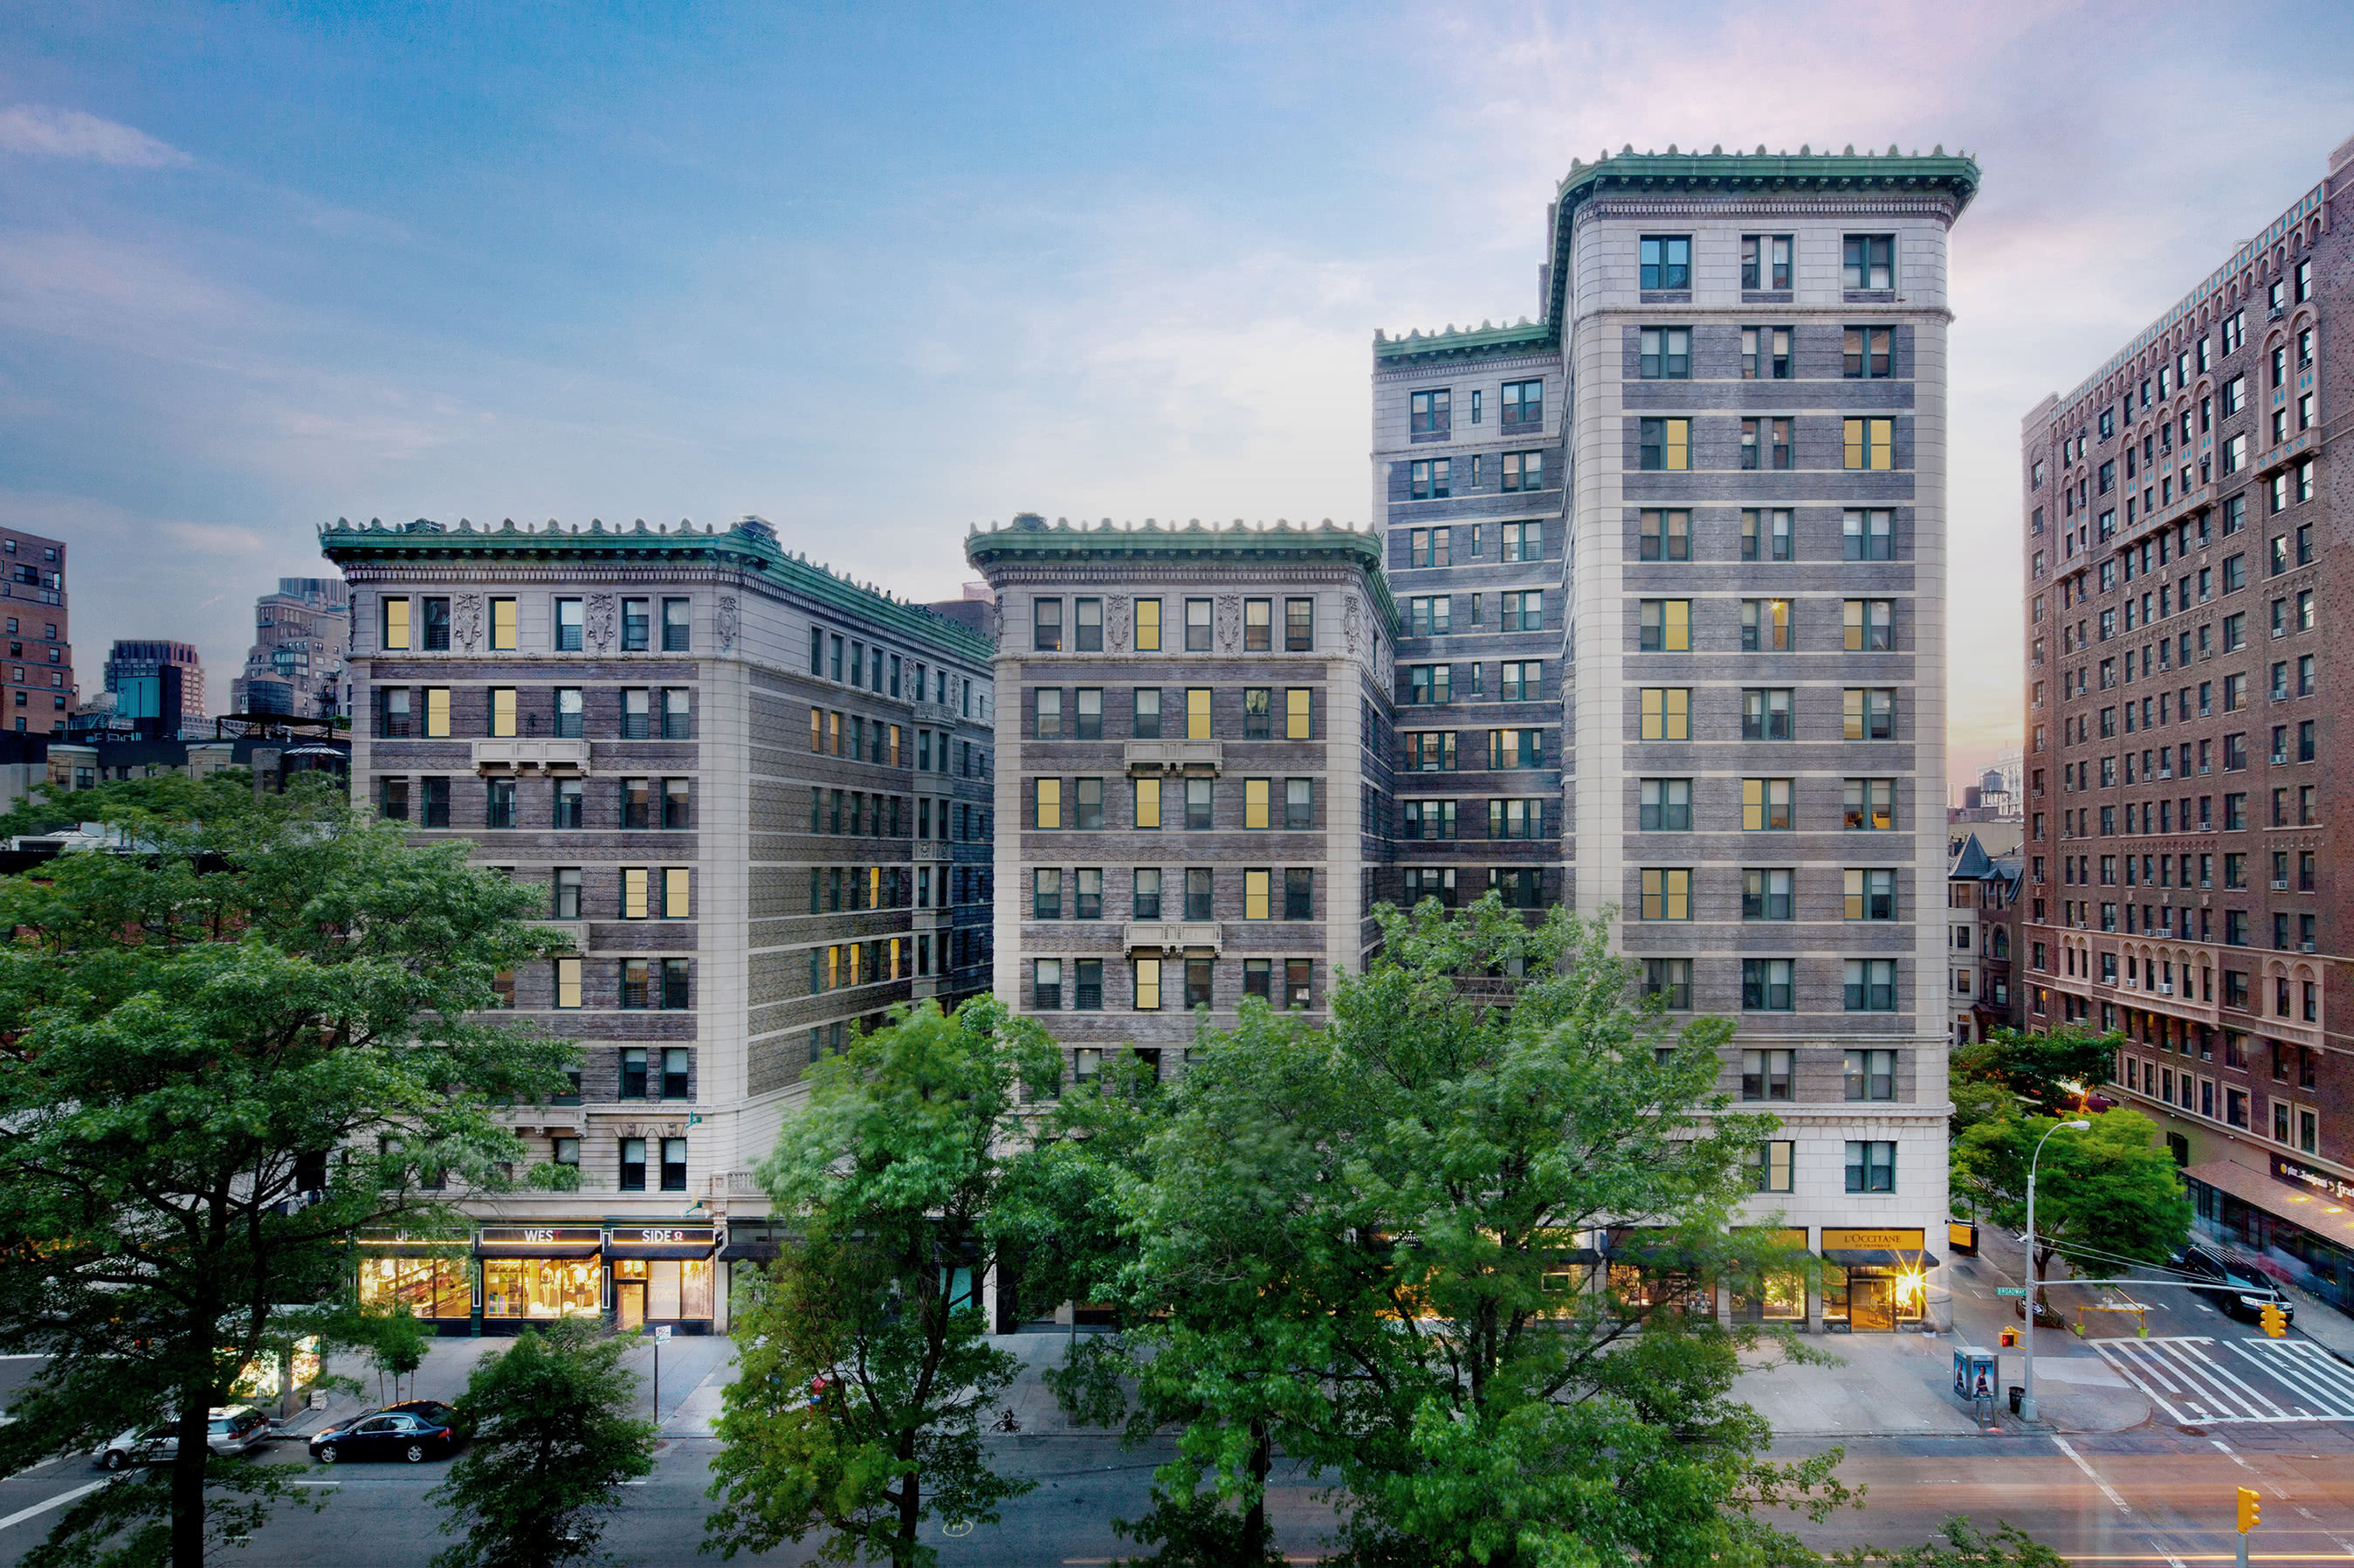 Upper West Side Condos for sale at the Astor